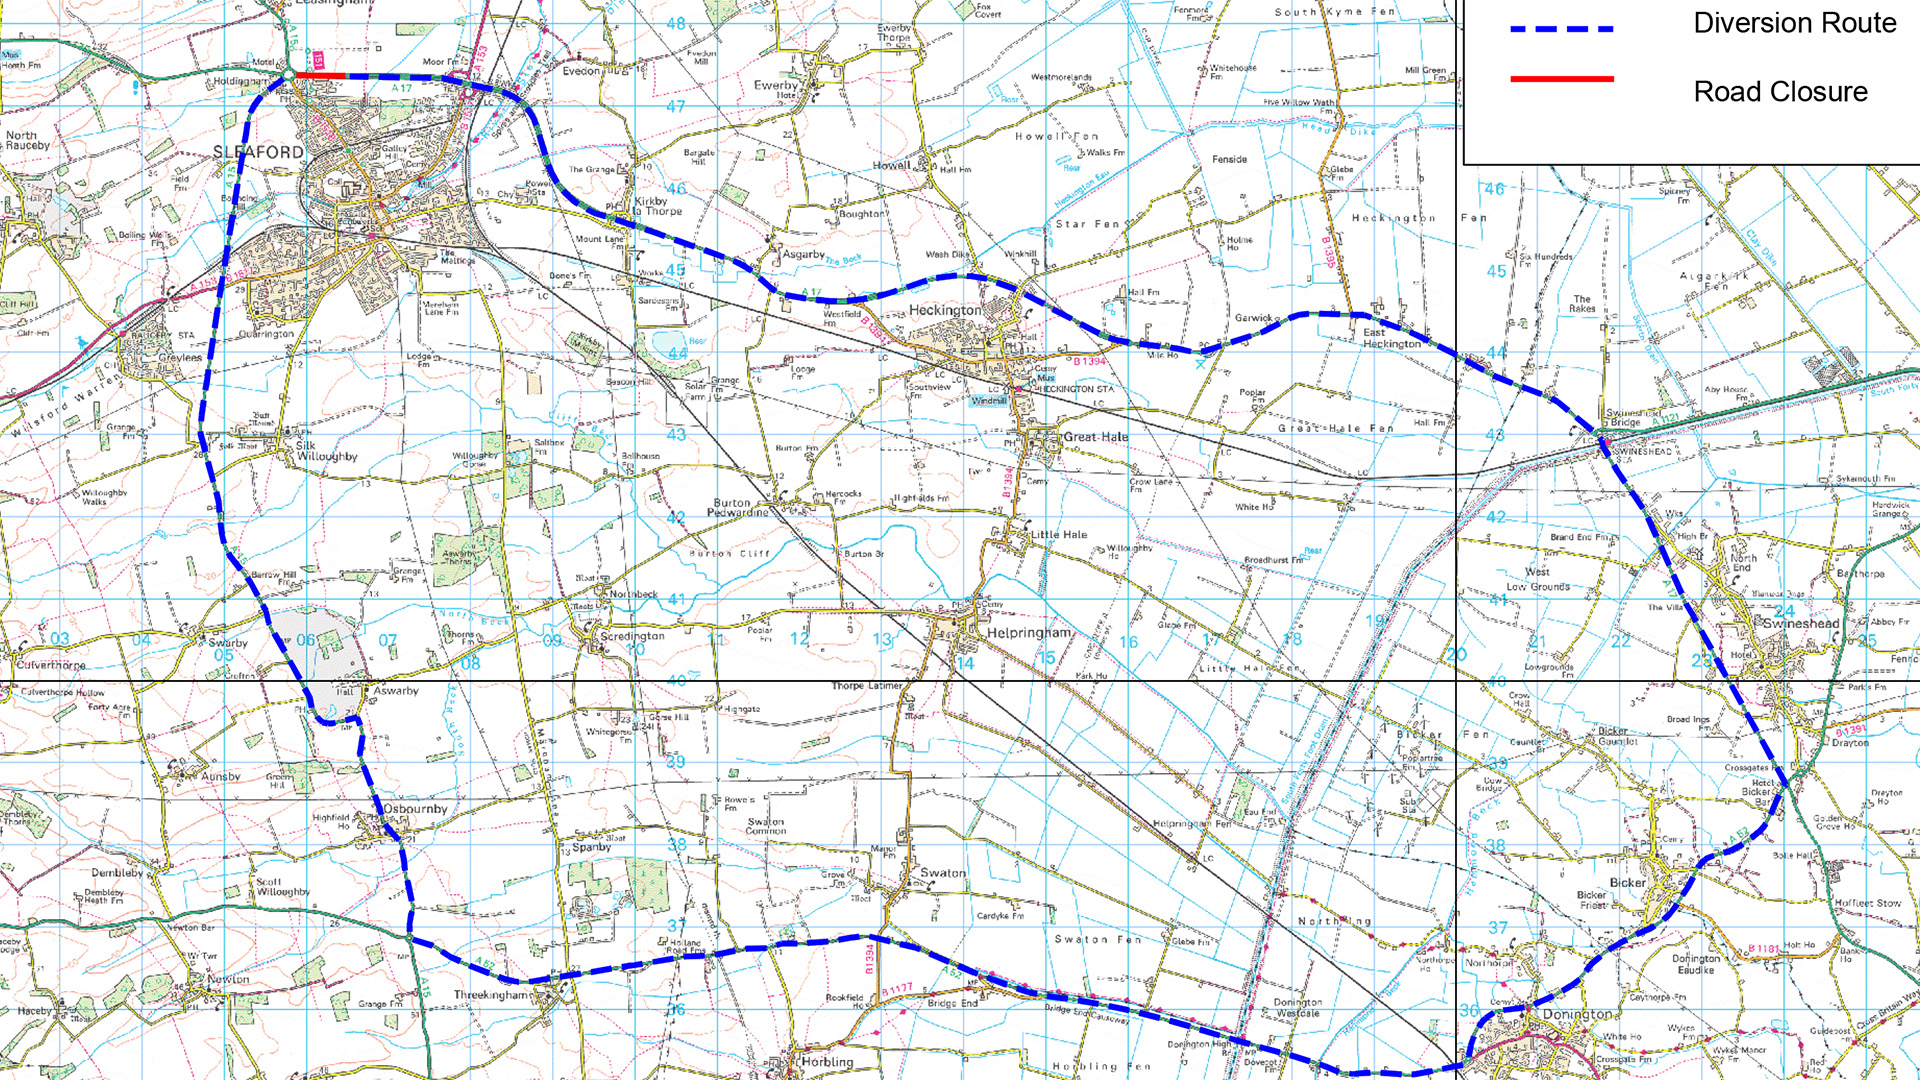 Diversion Route - A17 East